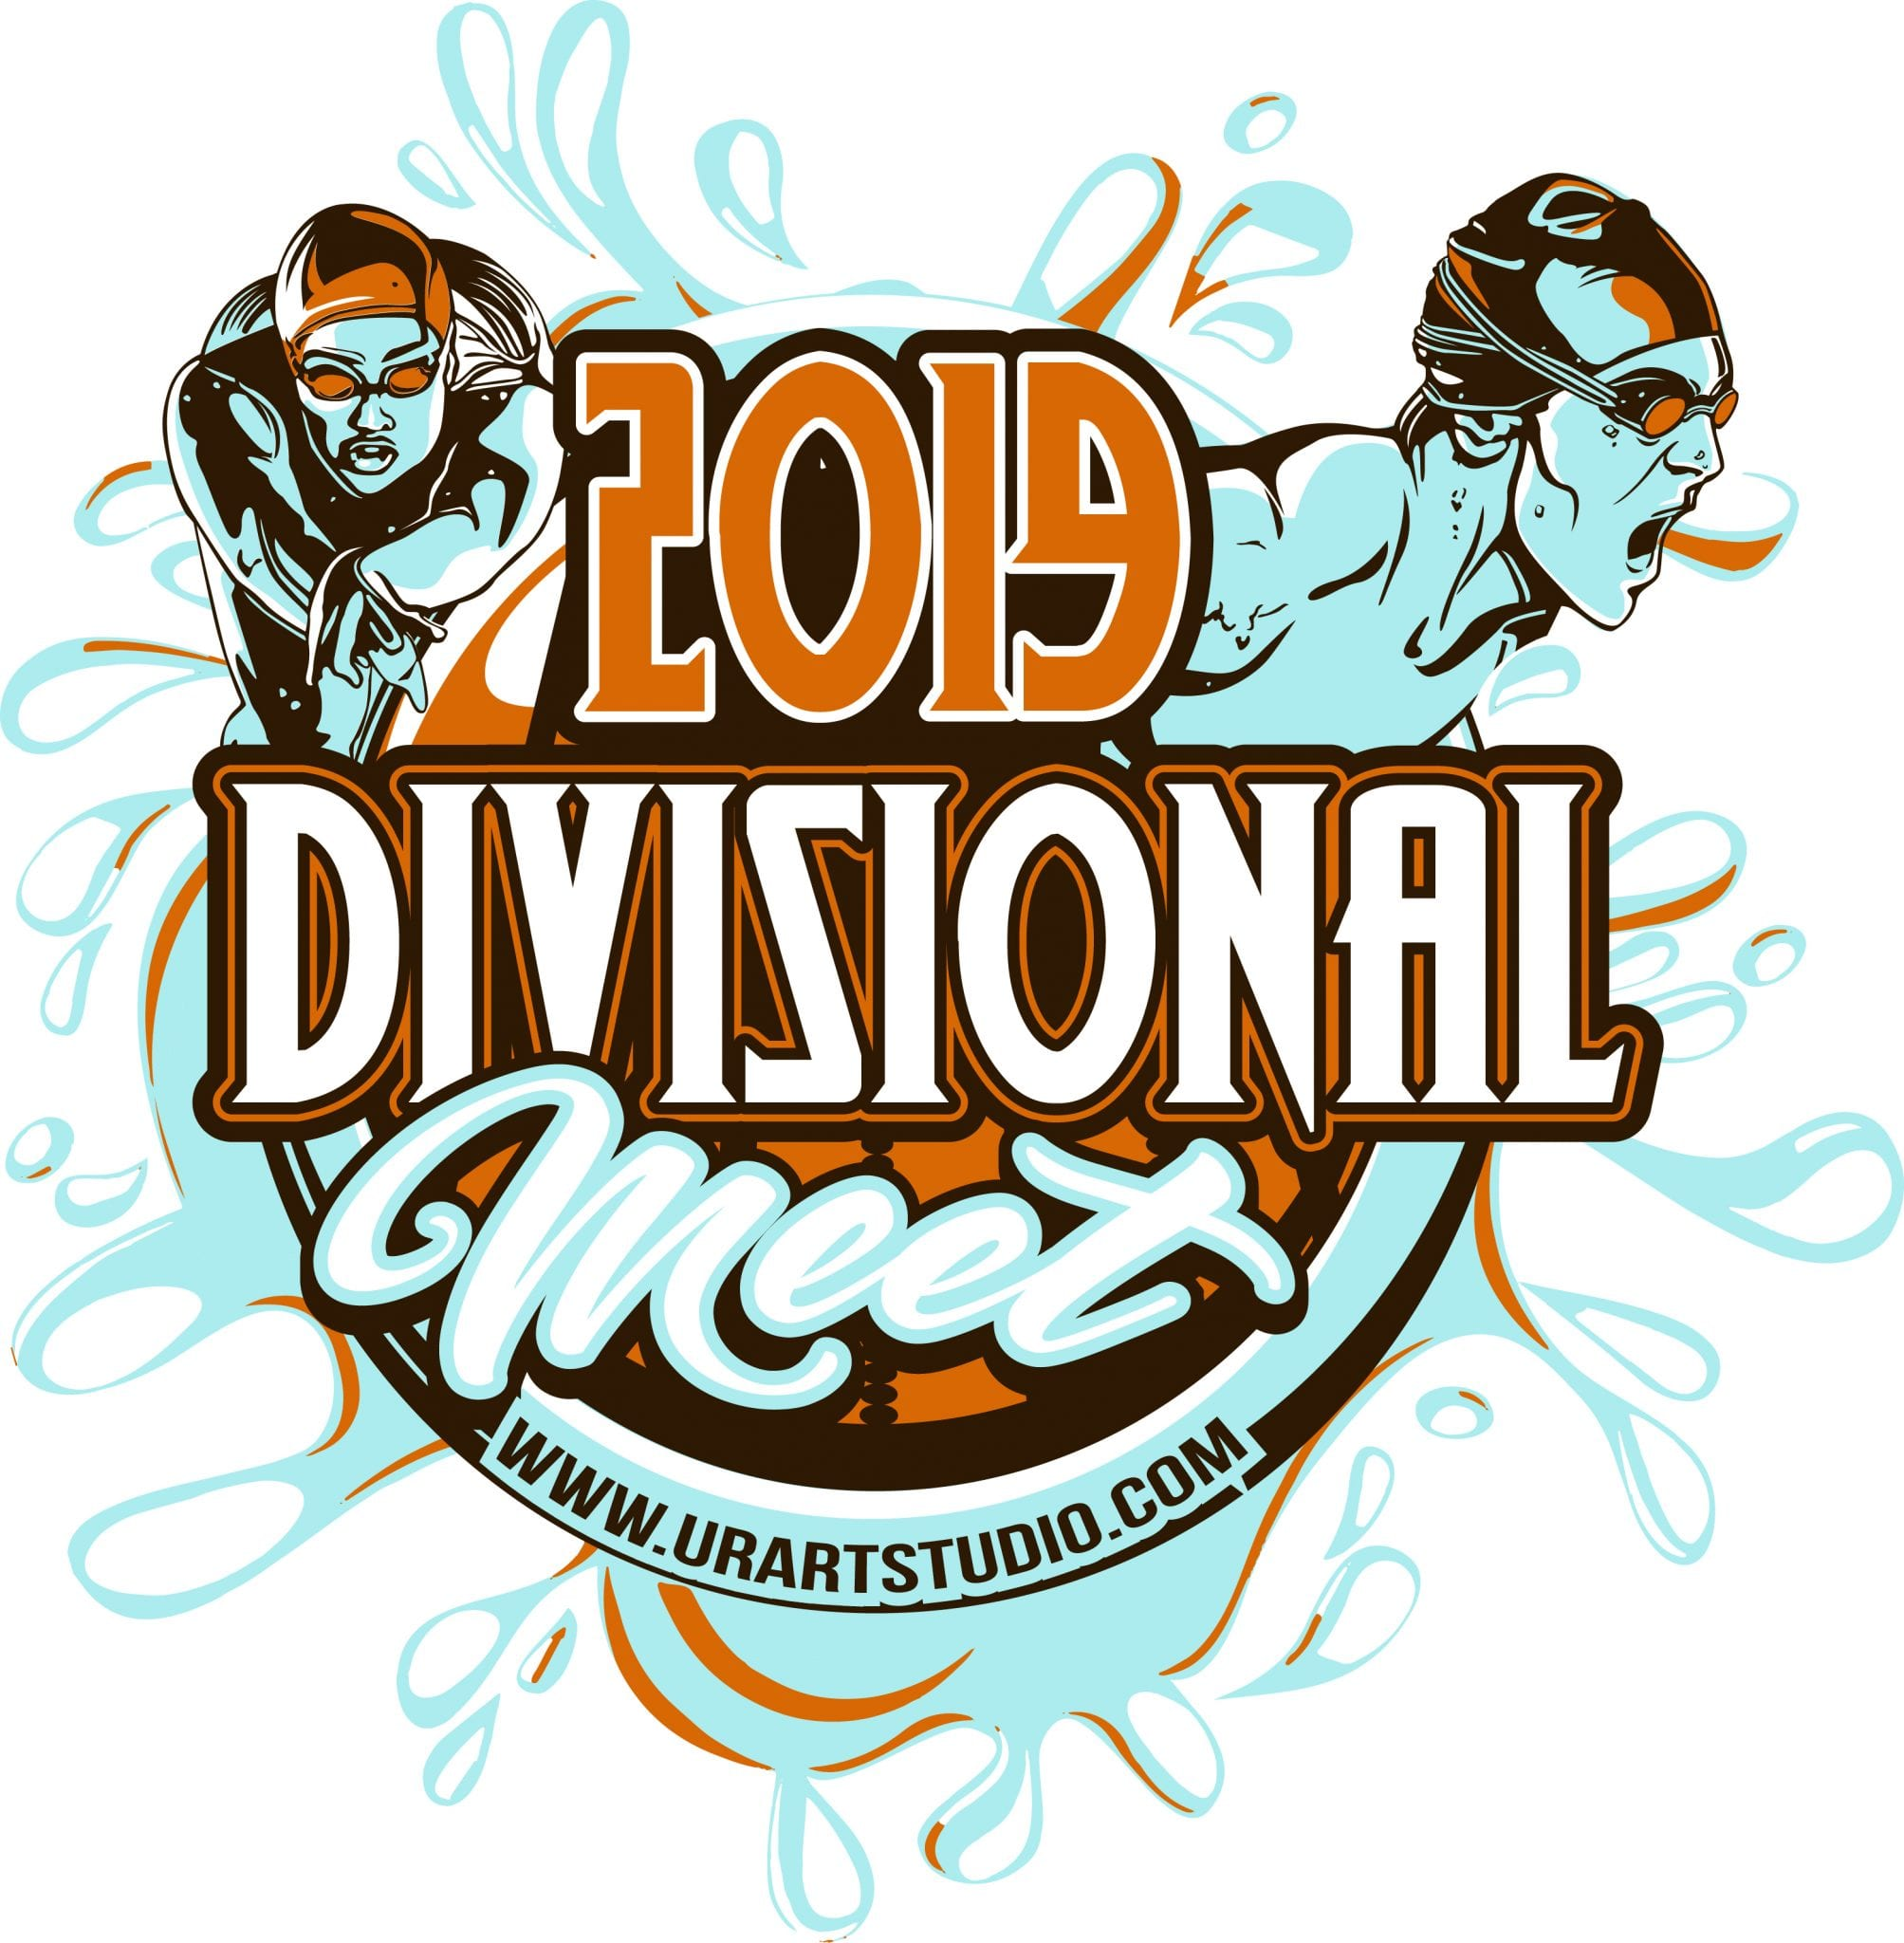 DIVISIONAL MEET SWIMMING customizable T-shirt vector logo design for print 2019